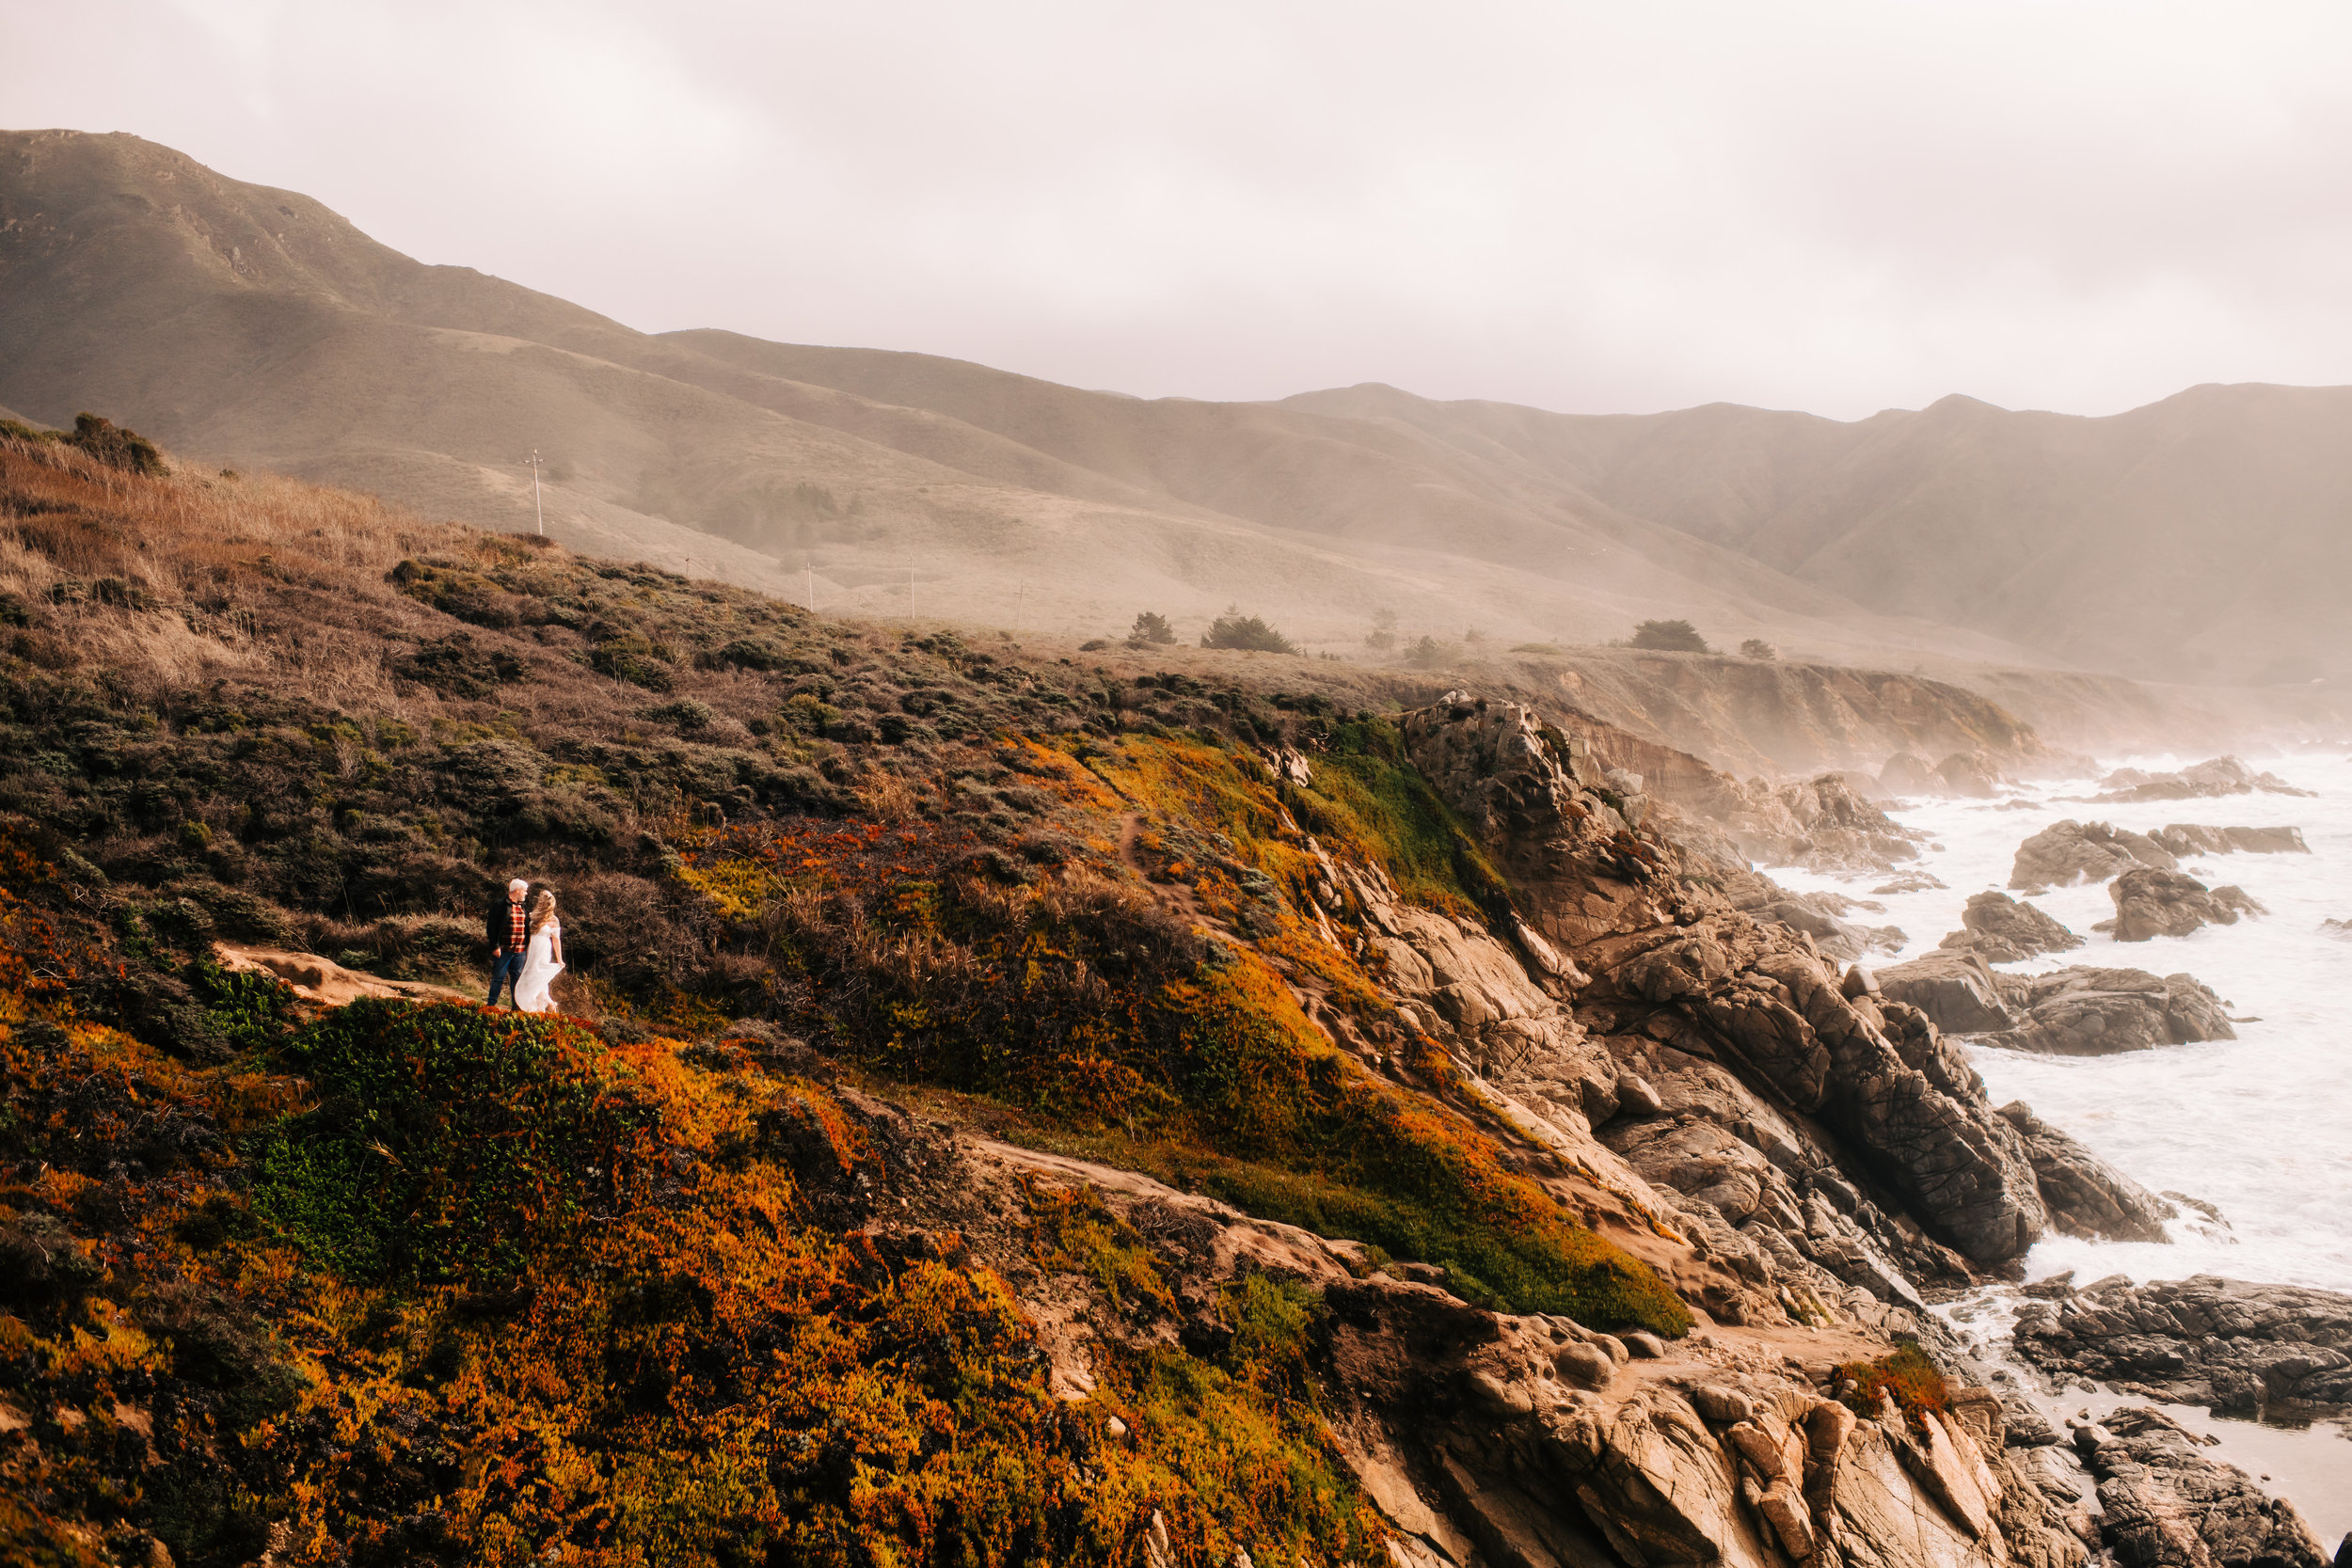 san francisco oakland bay area california sf yosemite big sur vow renewal nontraditional wedding photographer -220.jpg